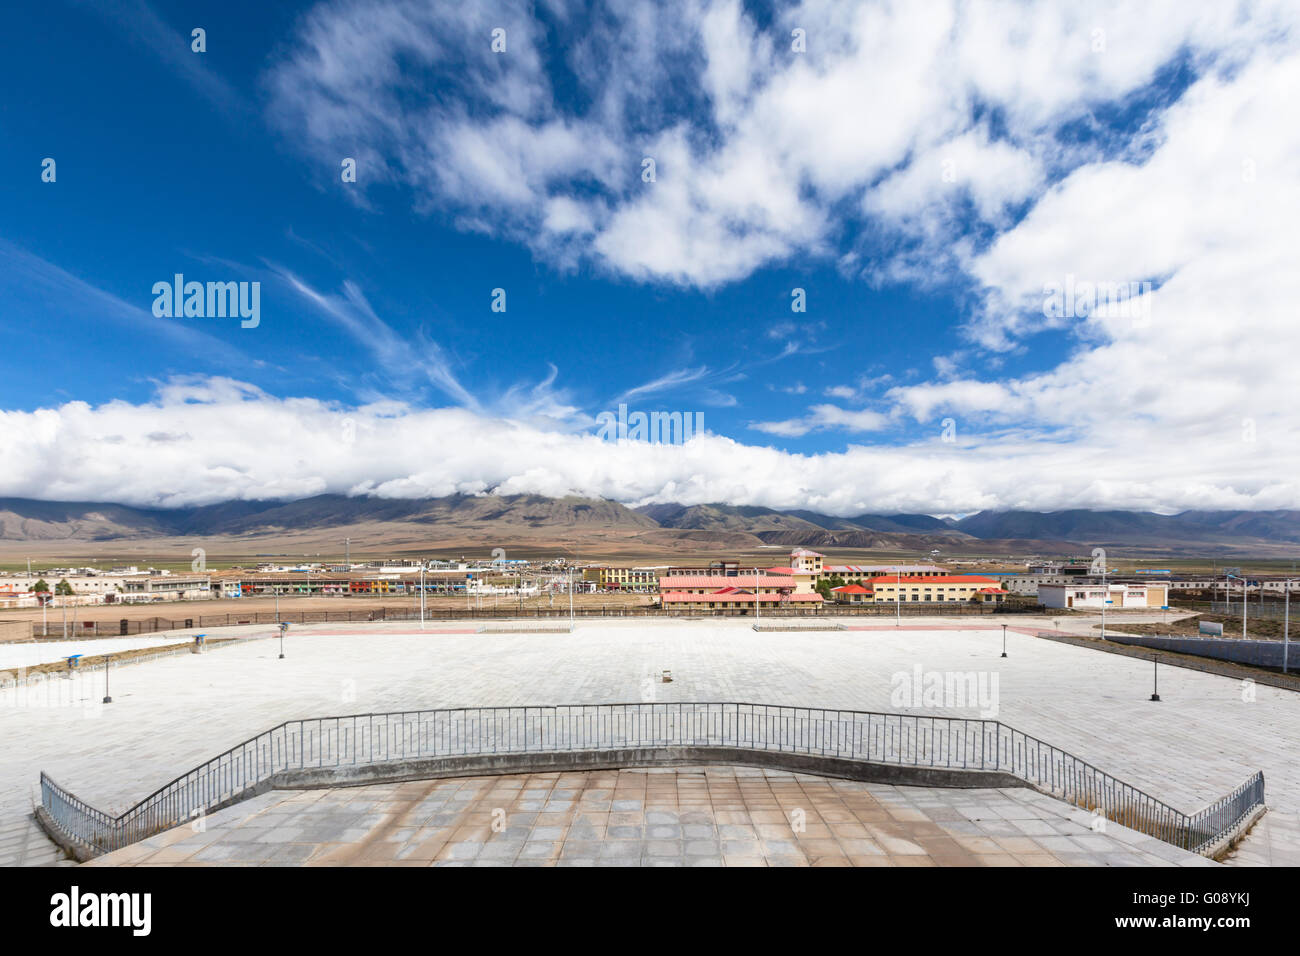 View of Damxung county from the railway station, Tibet, China - Stock Image